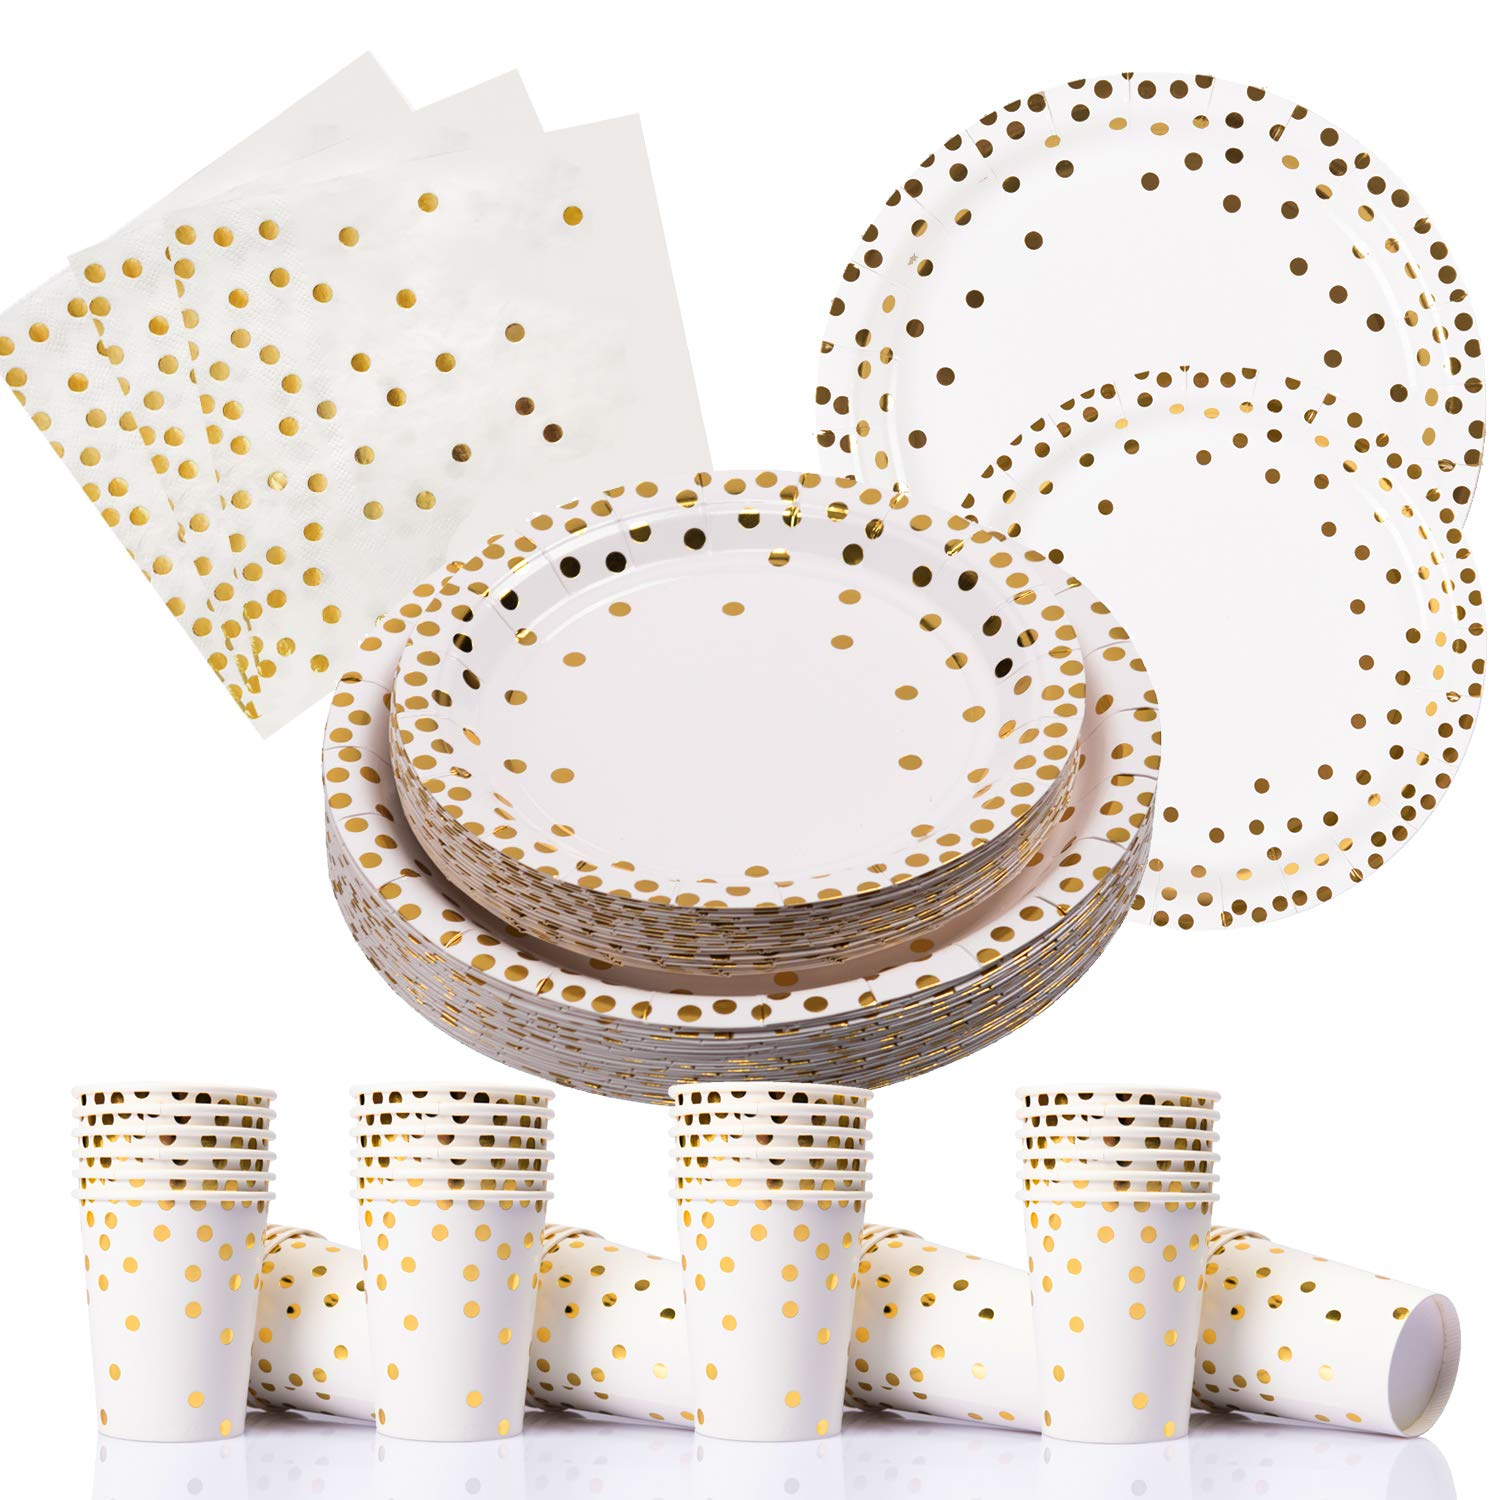 200PCS Gold Dot Disposable Paper Plates,Cups and Napkins, Tableware Sets Include 50 Dinner Plates, 50 Dessert Plates, 50 9 oz Paper Cups, 50 Luncheon Napkins, for Baby Shower Birthday Wedding Party by PartyFun